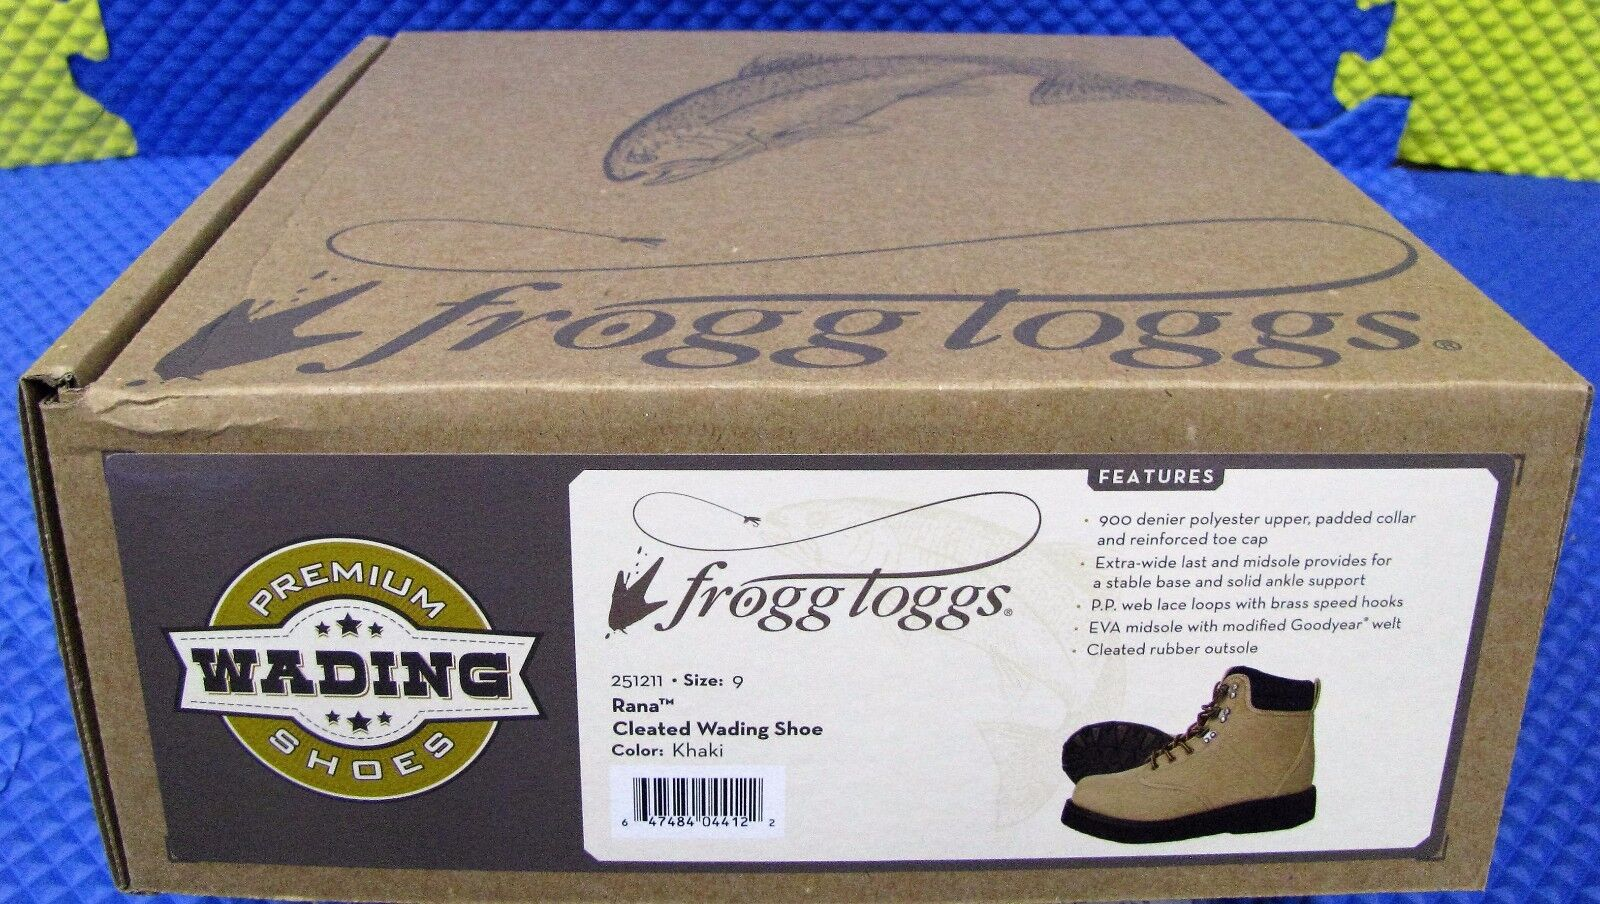 FROGG TOGGS Rana Multi-Cleated Wading shoes-251211 Khaki color CHOOSE YOUR SIZE